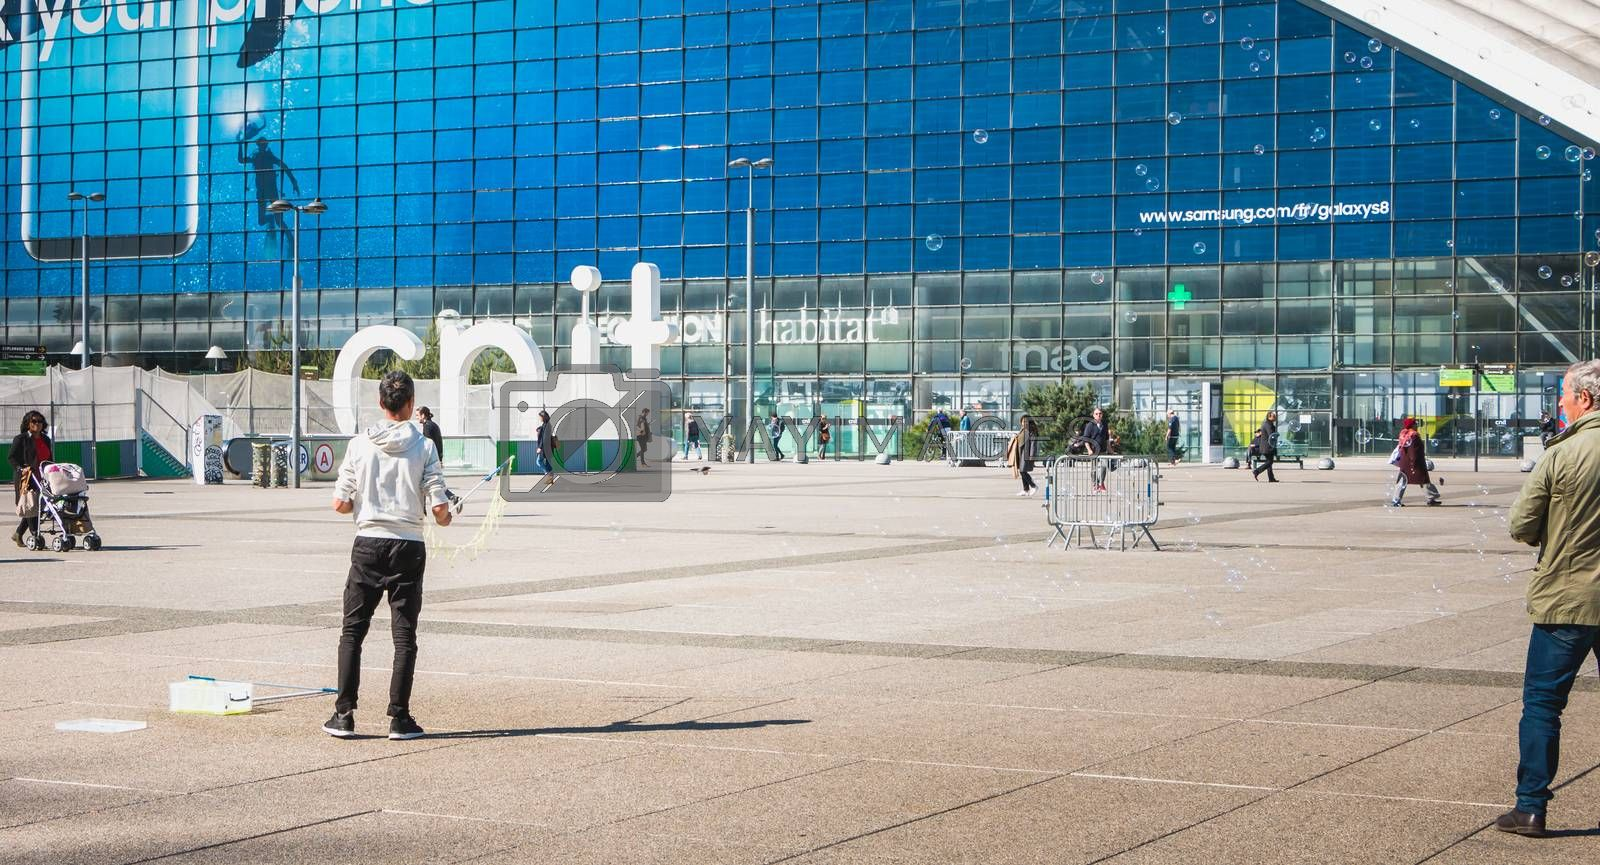 man makes giant bubbles in the middle of a central square by AtlanticEUROSTOXX